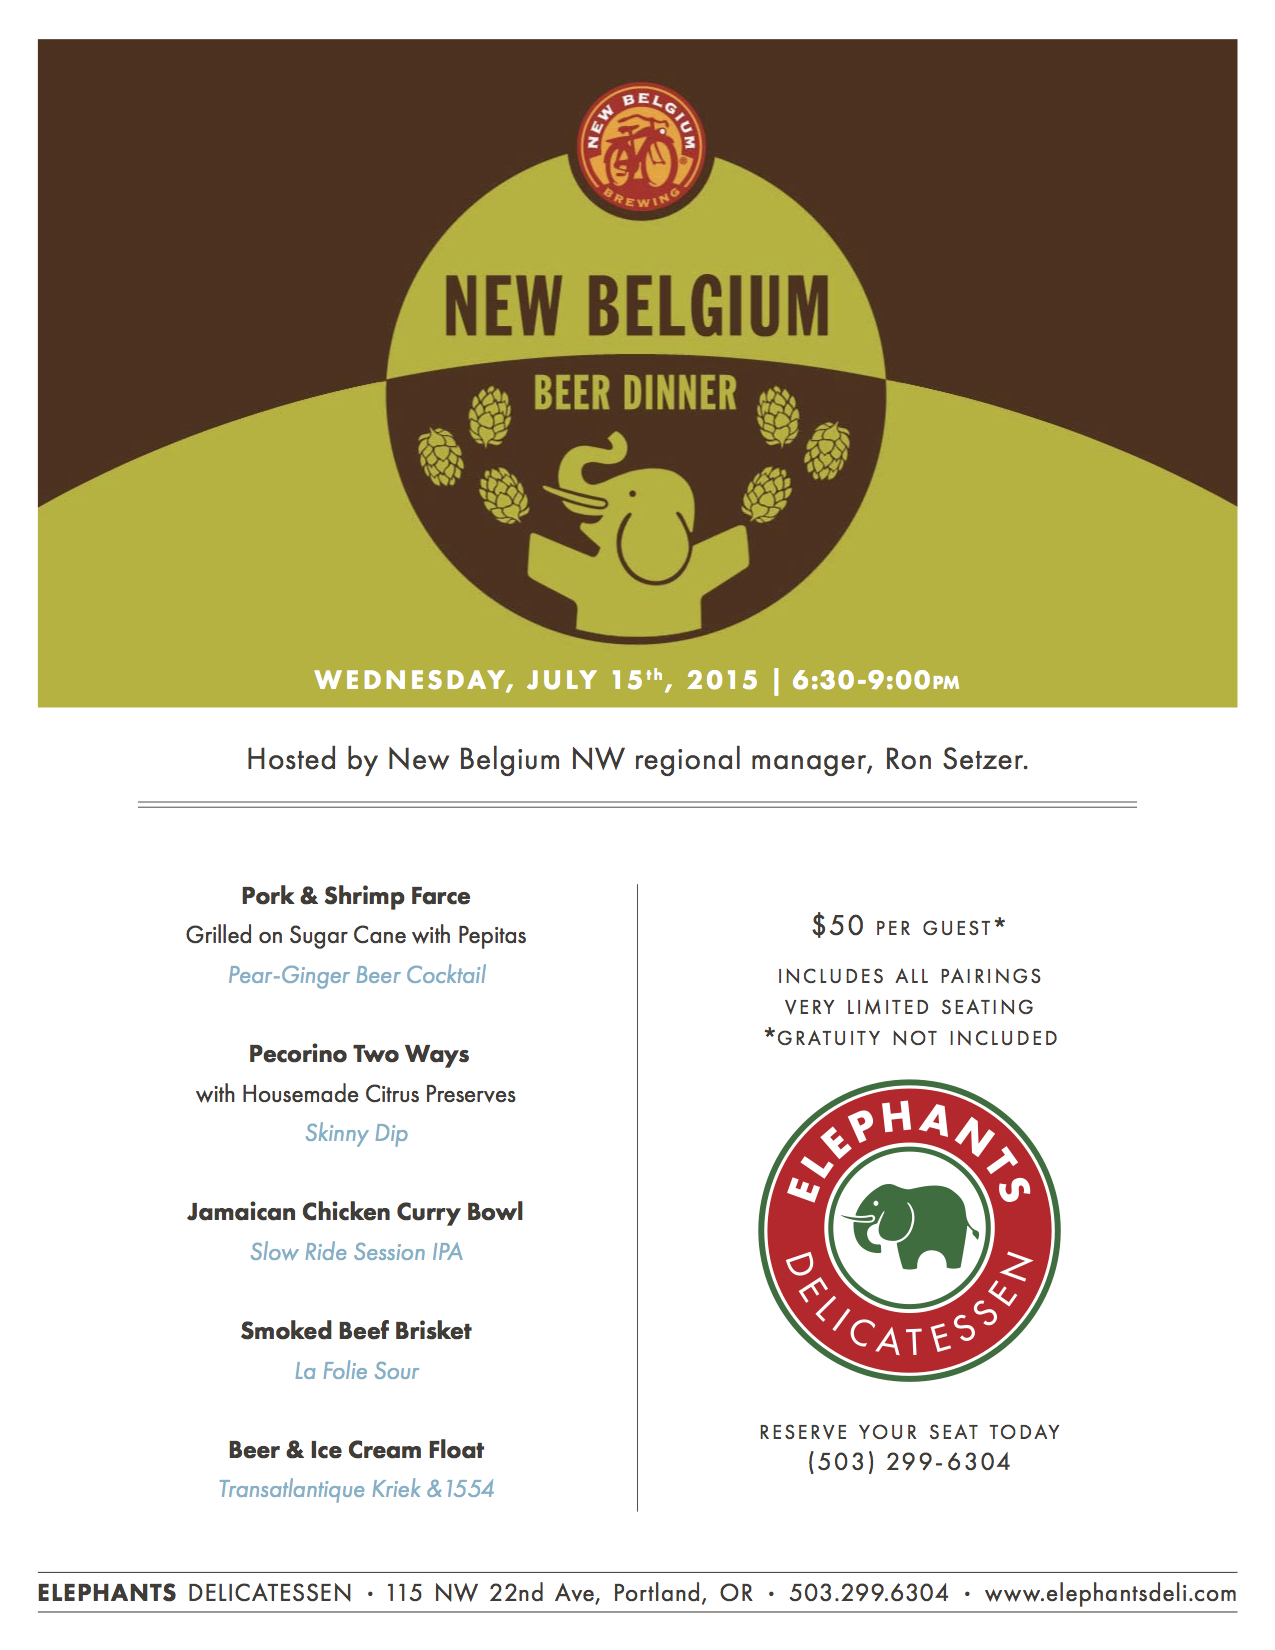 New Belgium Beer Dinner at Elephants Delicatessen